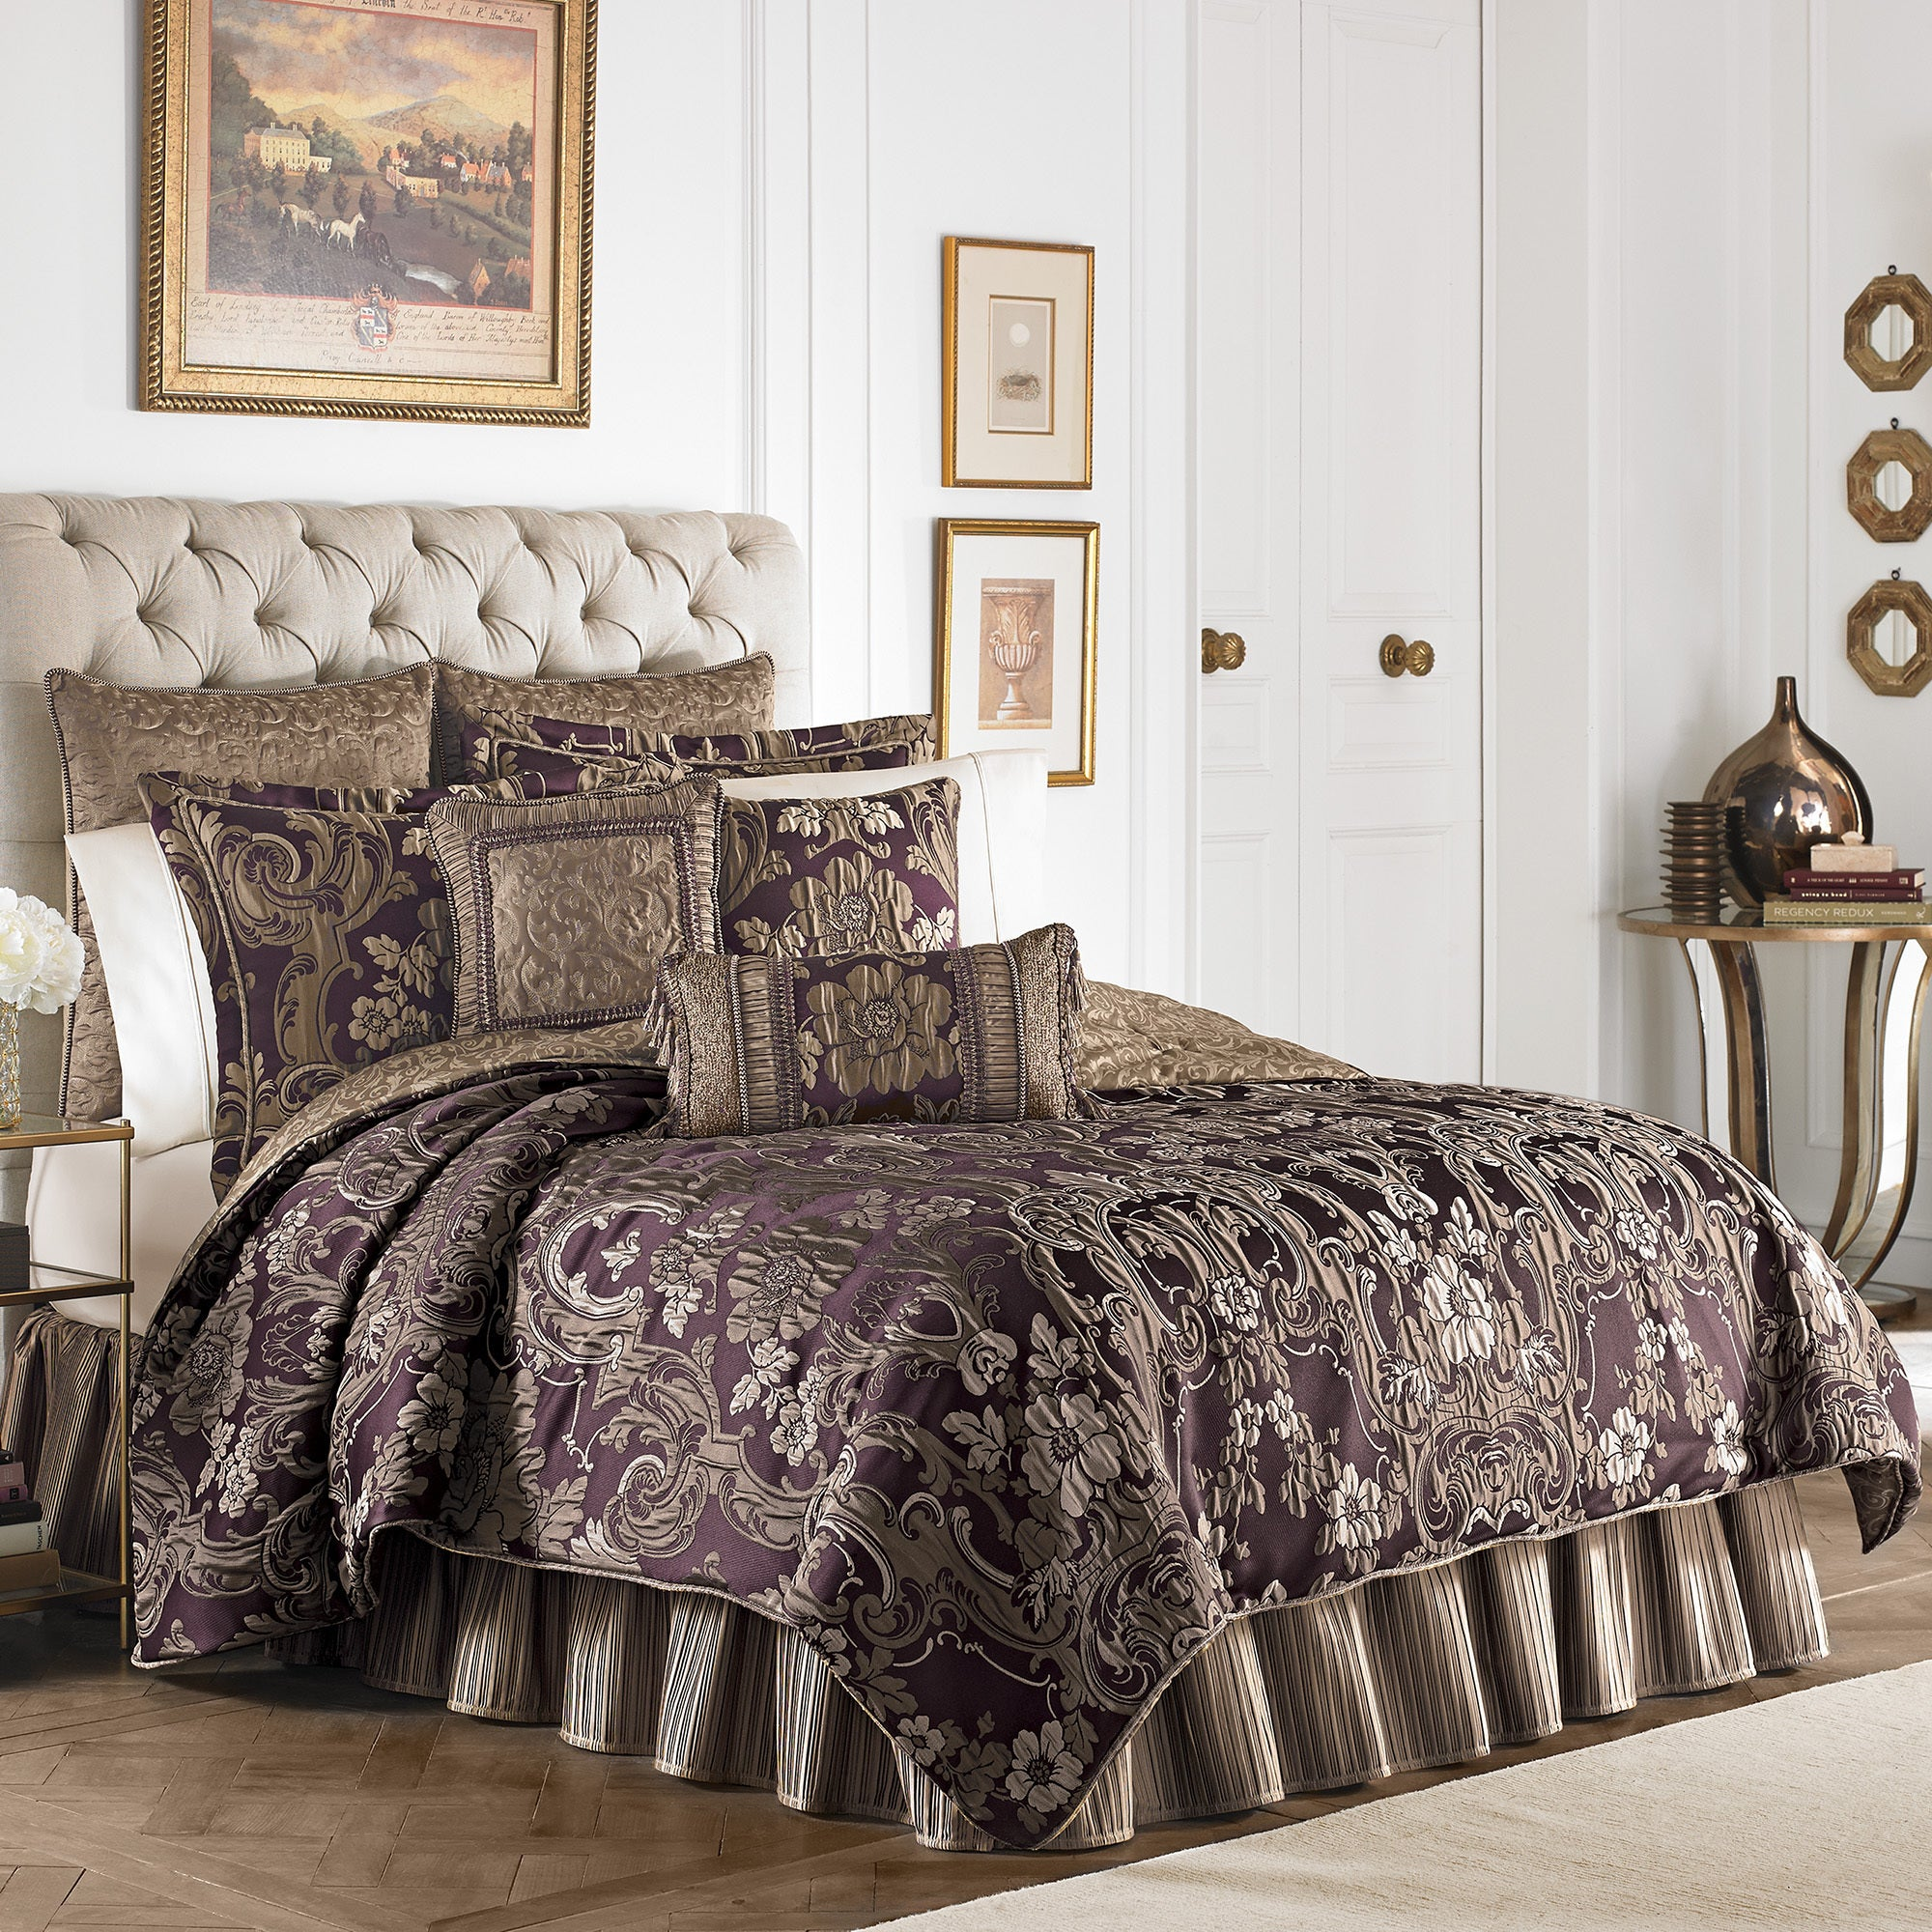 Croscill Everly Plum And Gold 4 Piece Comforter Set Overstock 10704036